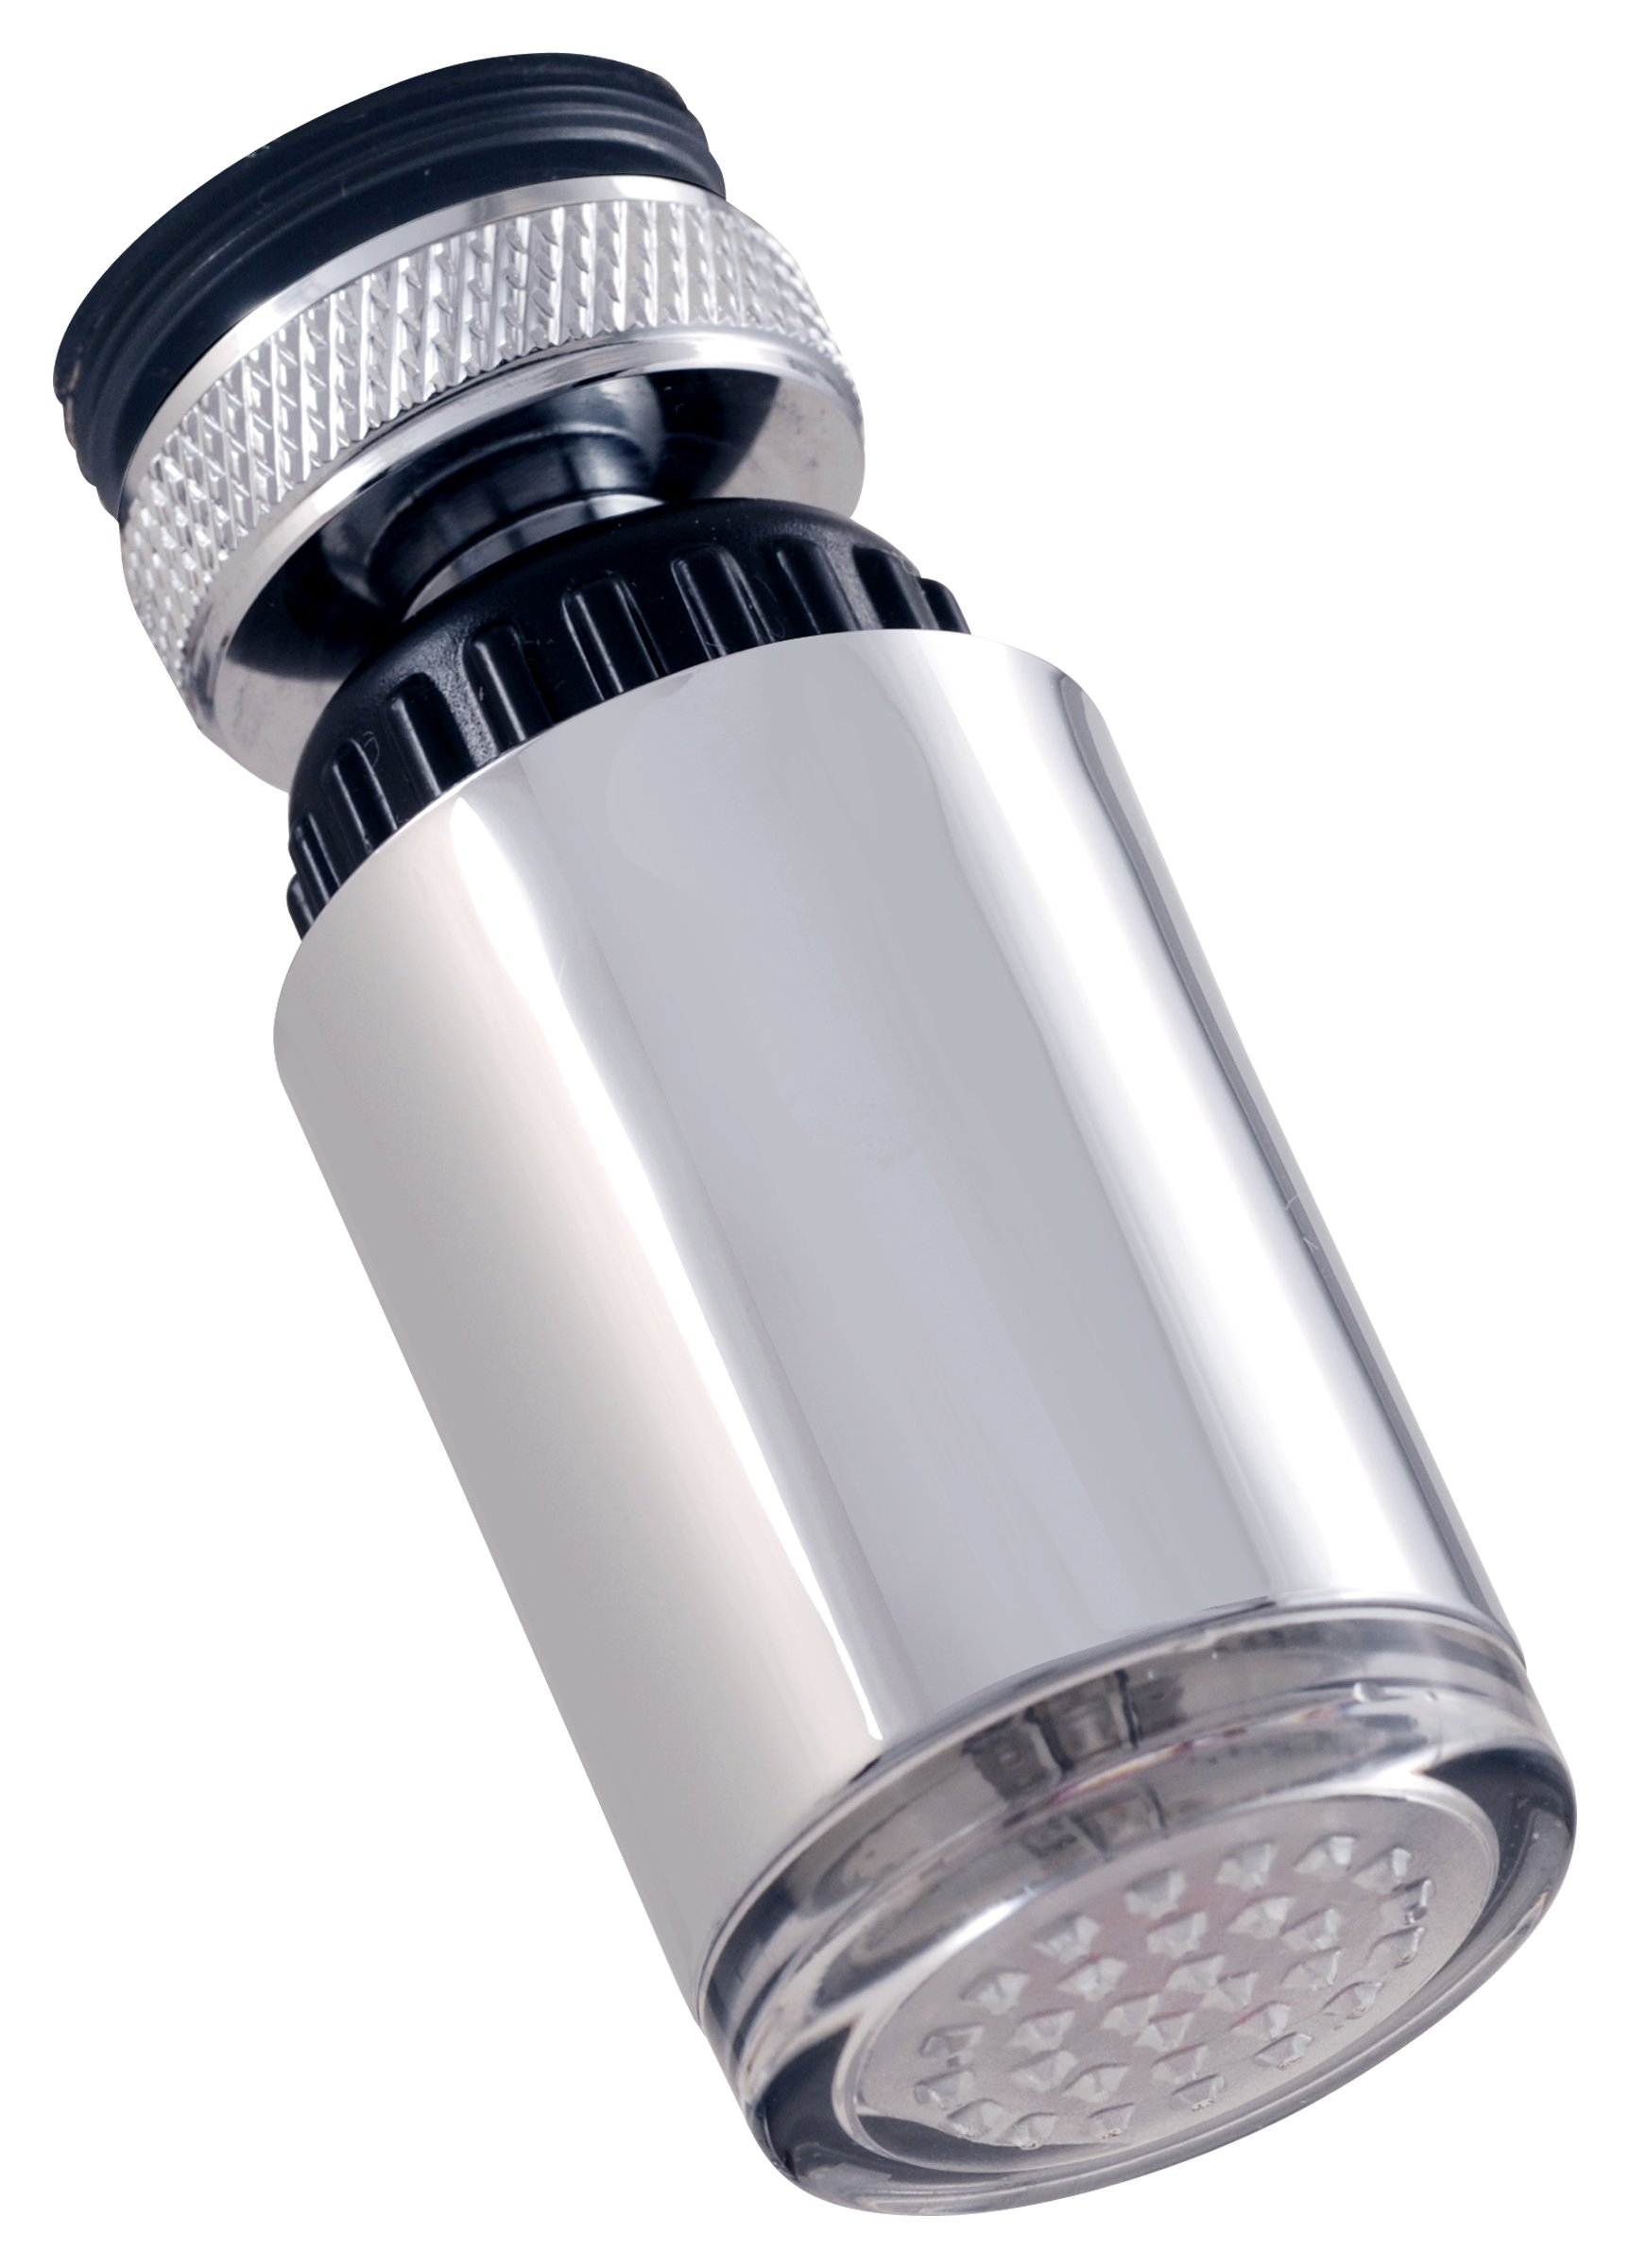 LDR 530 2165TL LED Faucet Aerator Red to Blue Temperature Indicator Light for Hot or Cold, Chrome by LDR Industries